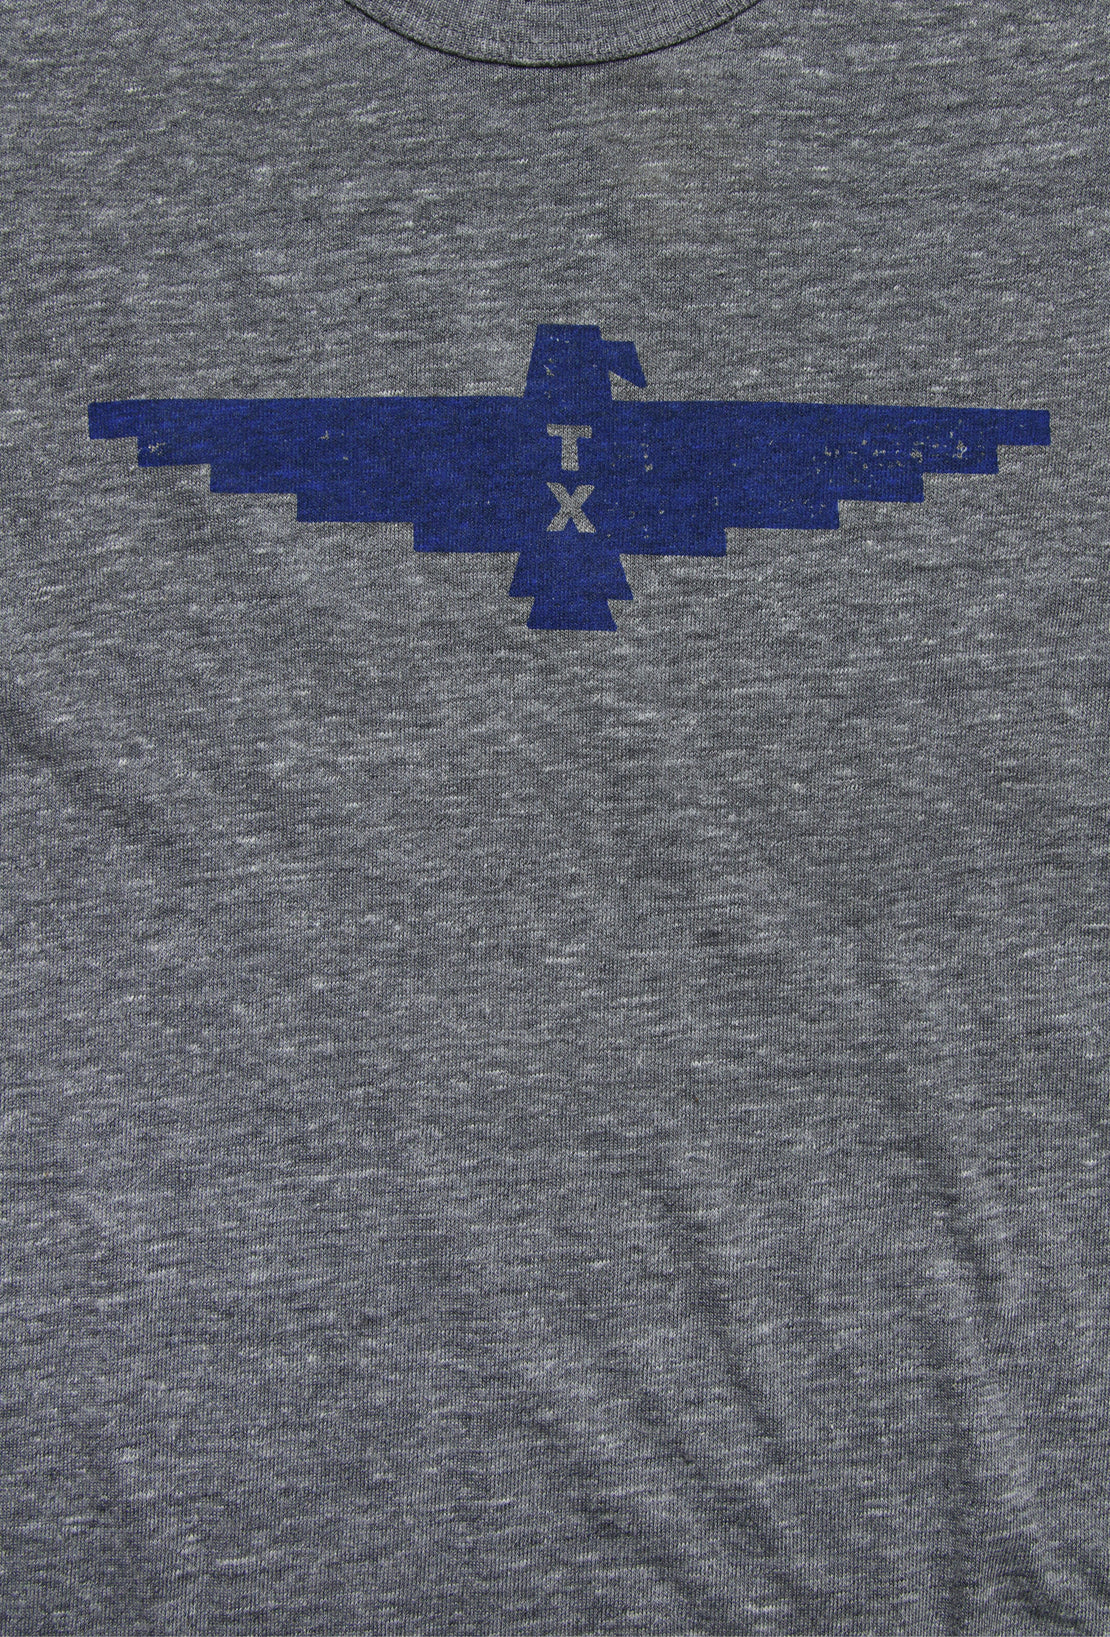 Graphic Tee - Thunderbird TX - Alchemy Design - STAG Provisions - Tops - Graphic Tee